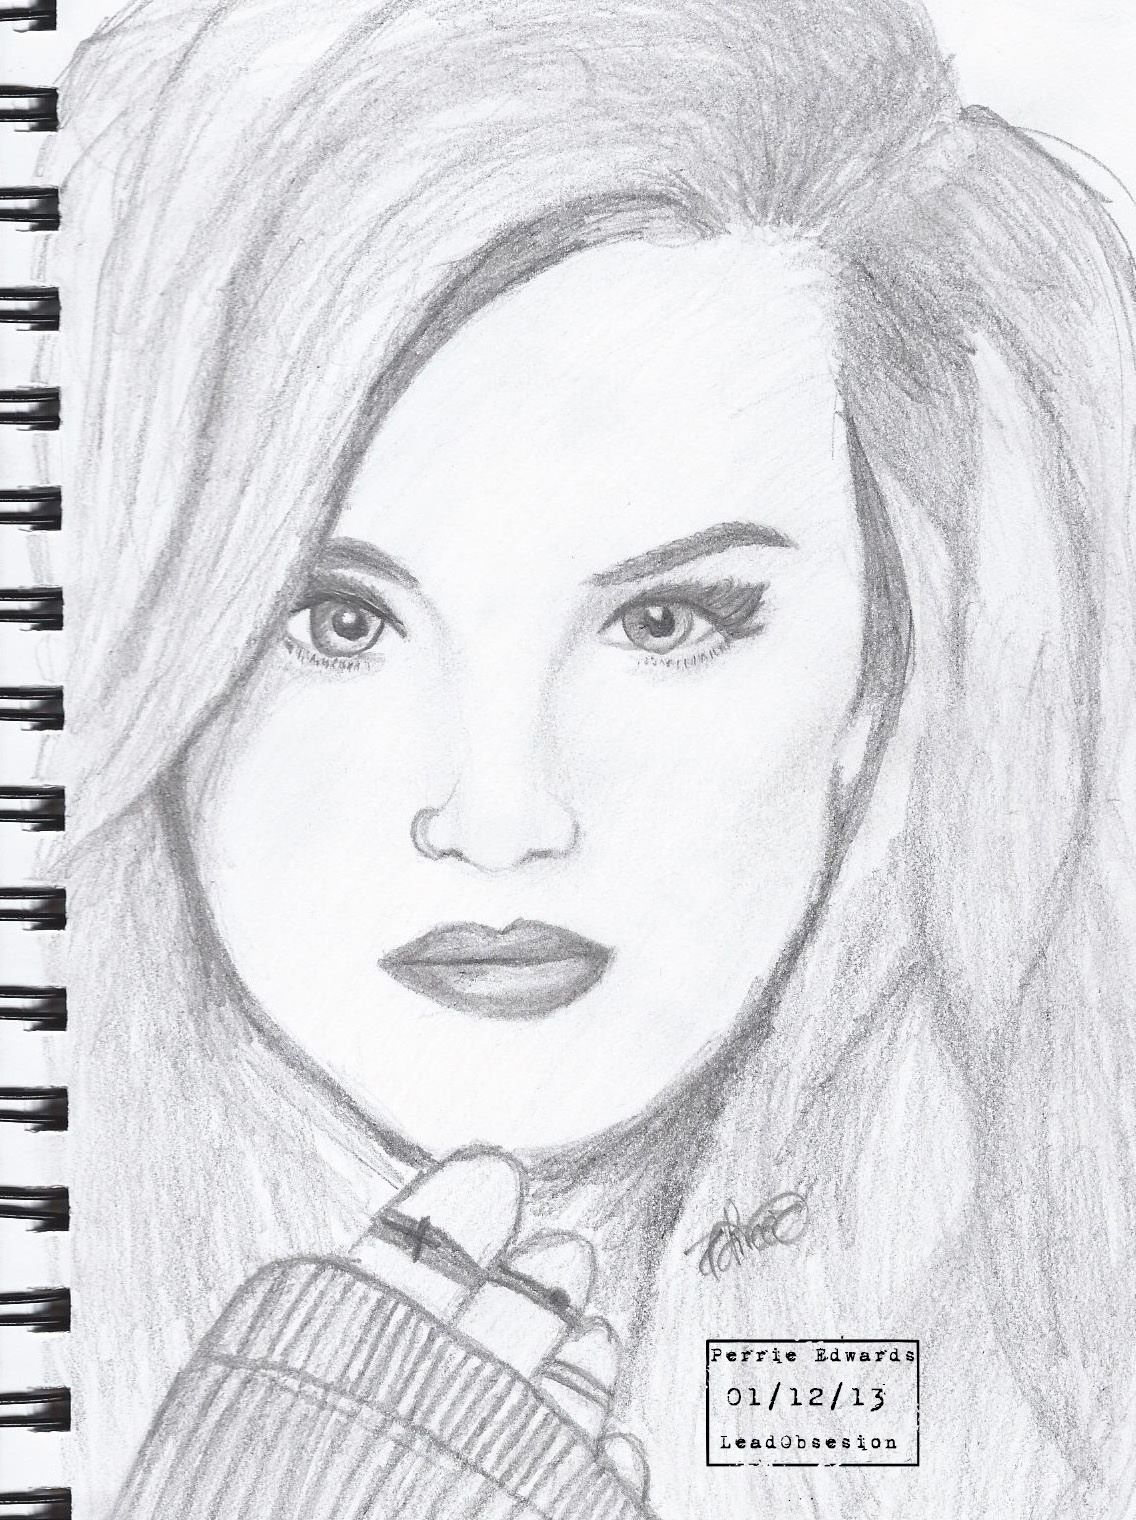 Perrie Edwards from Little Mix drawing.